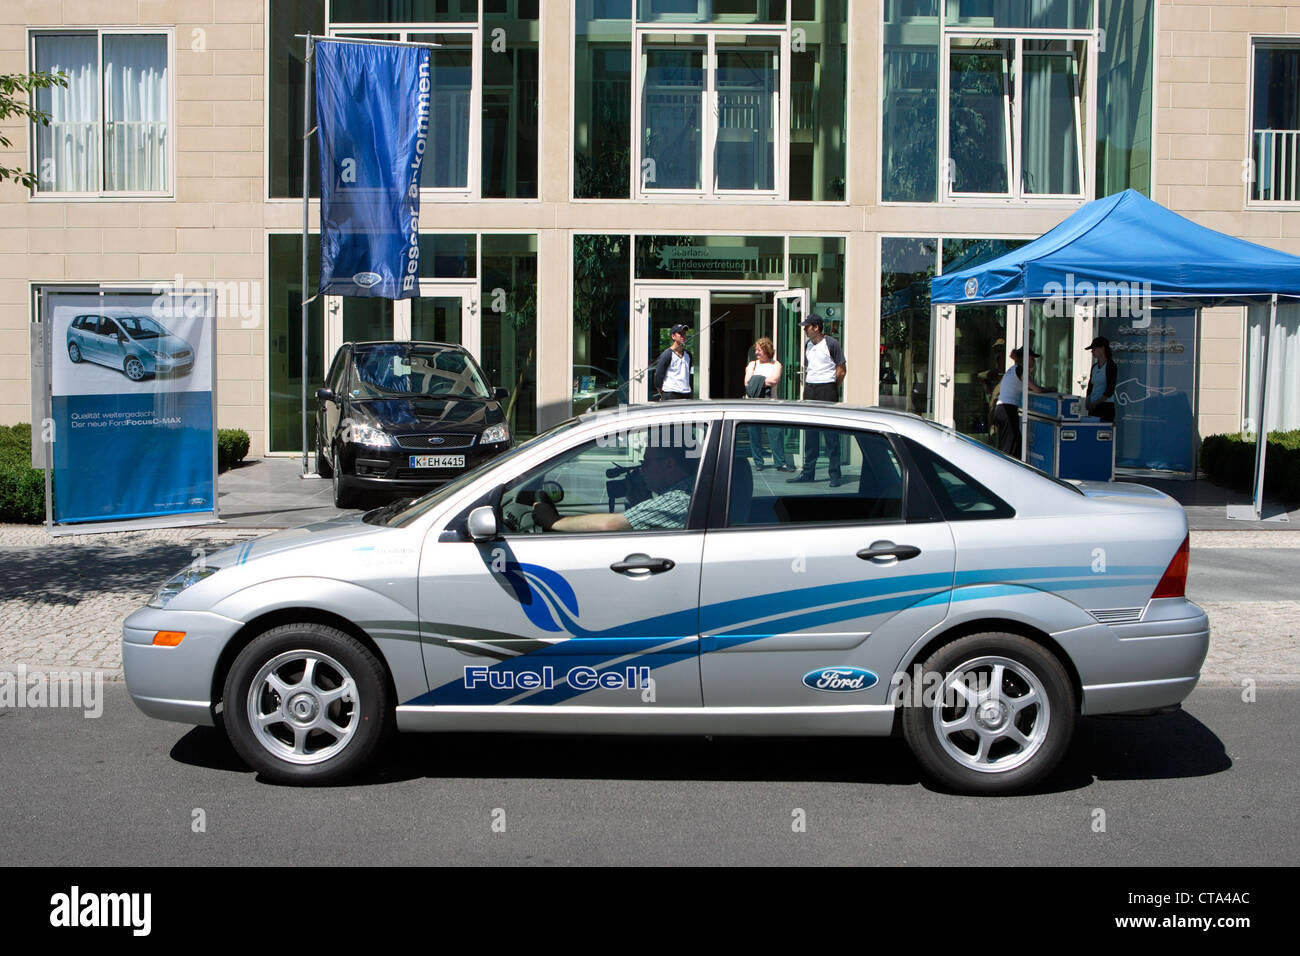 Ford Promotion Stock Photos & Ford Promotion Stock Images - Alamy